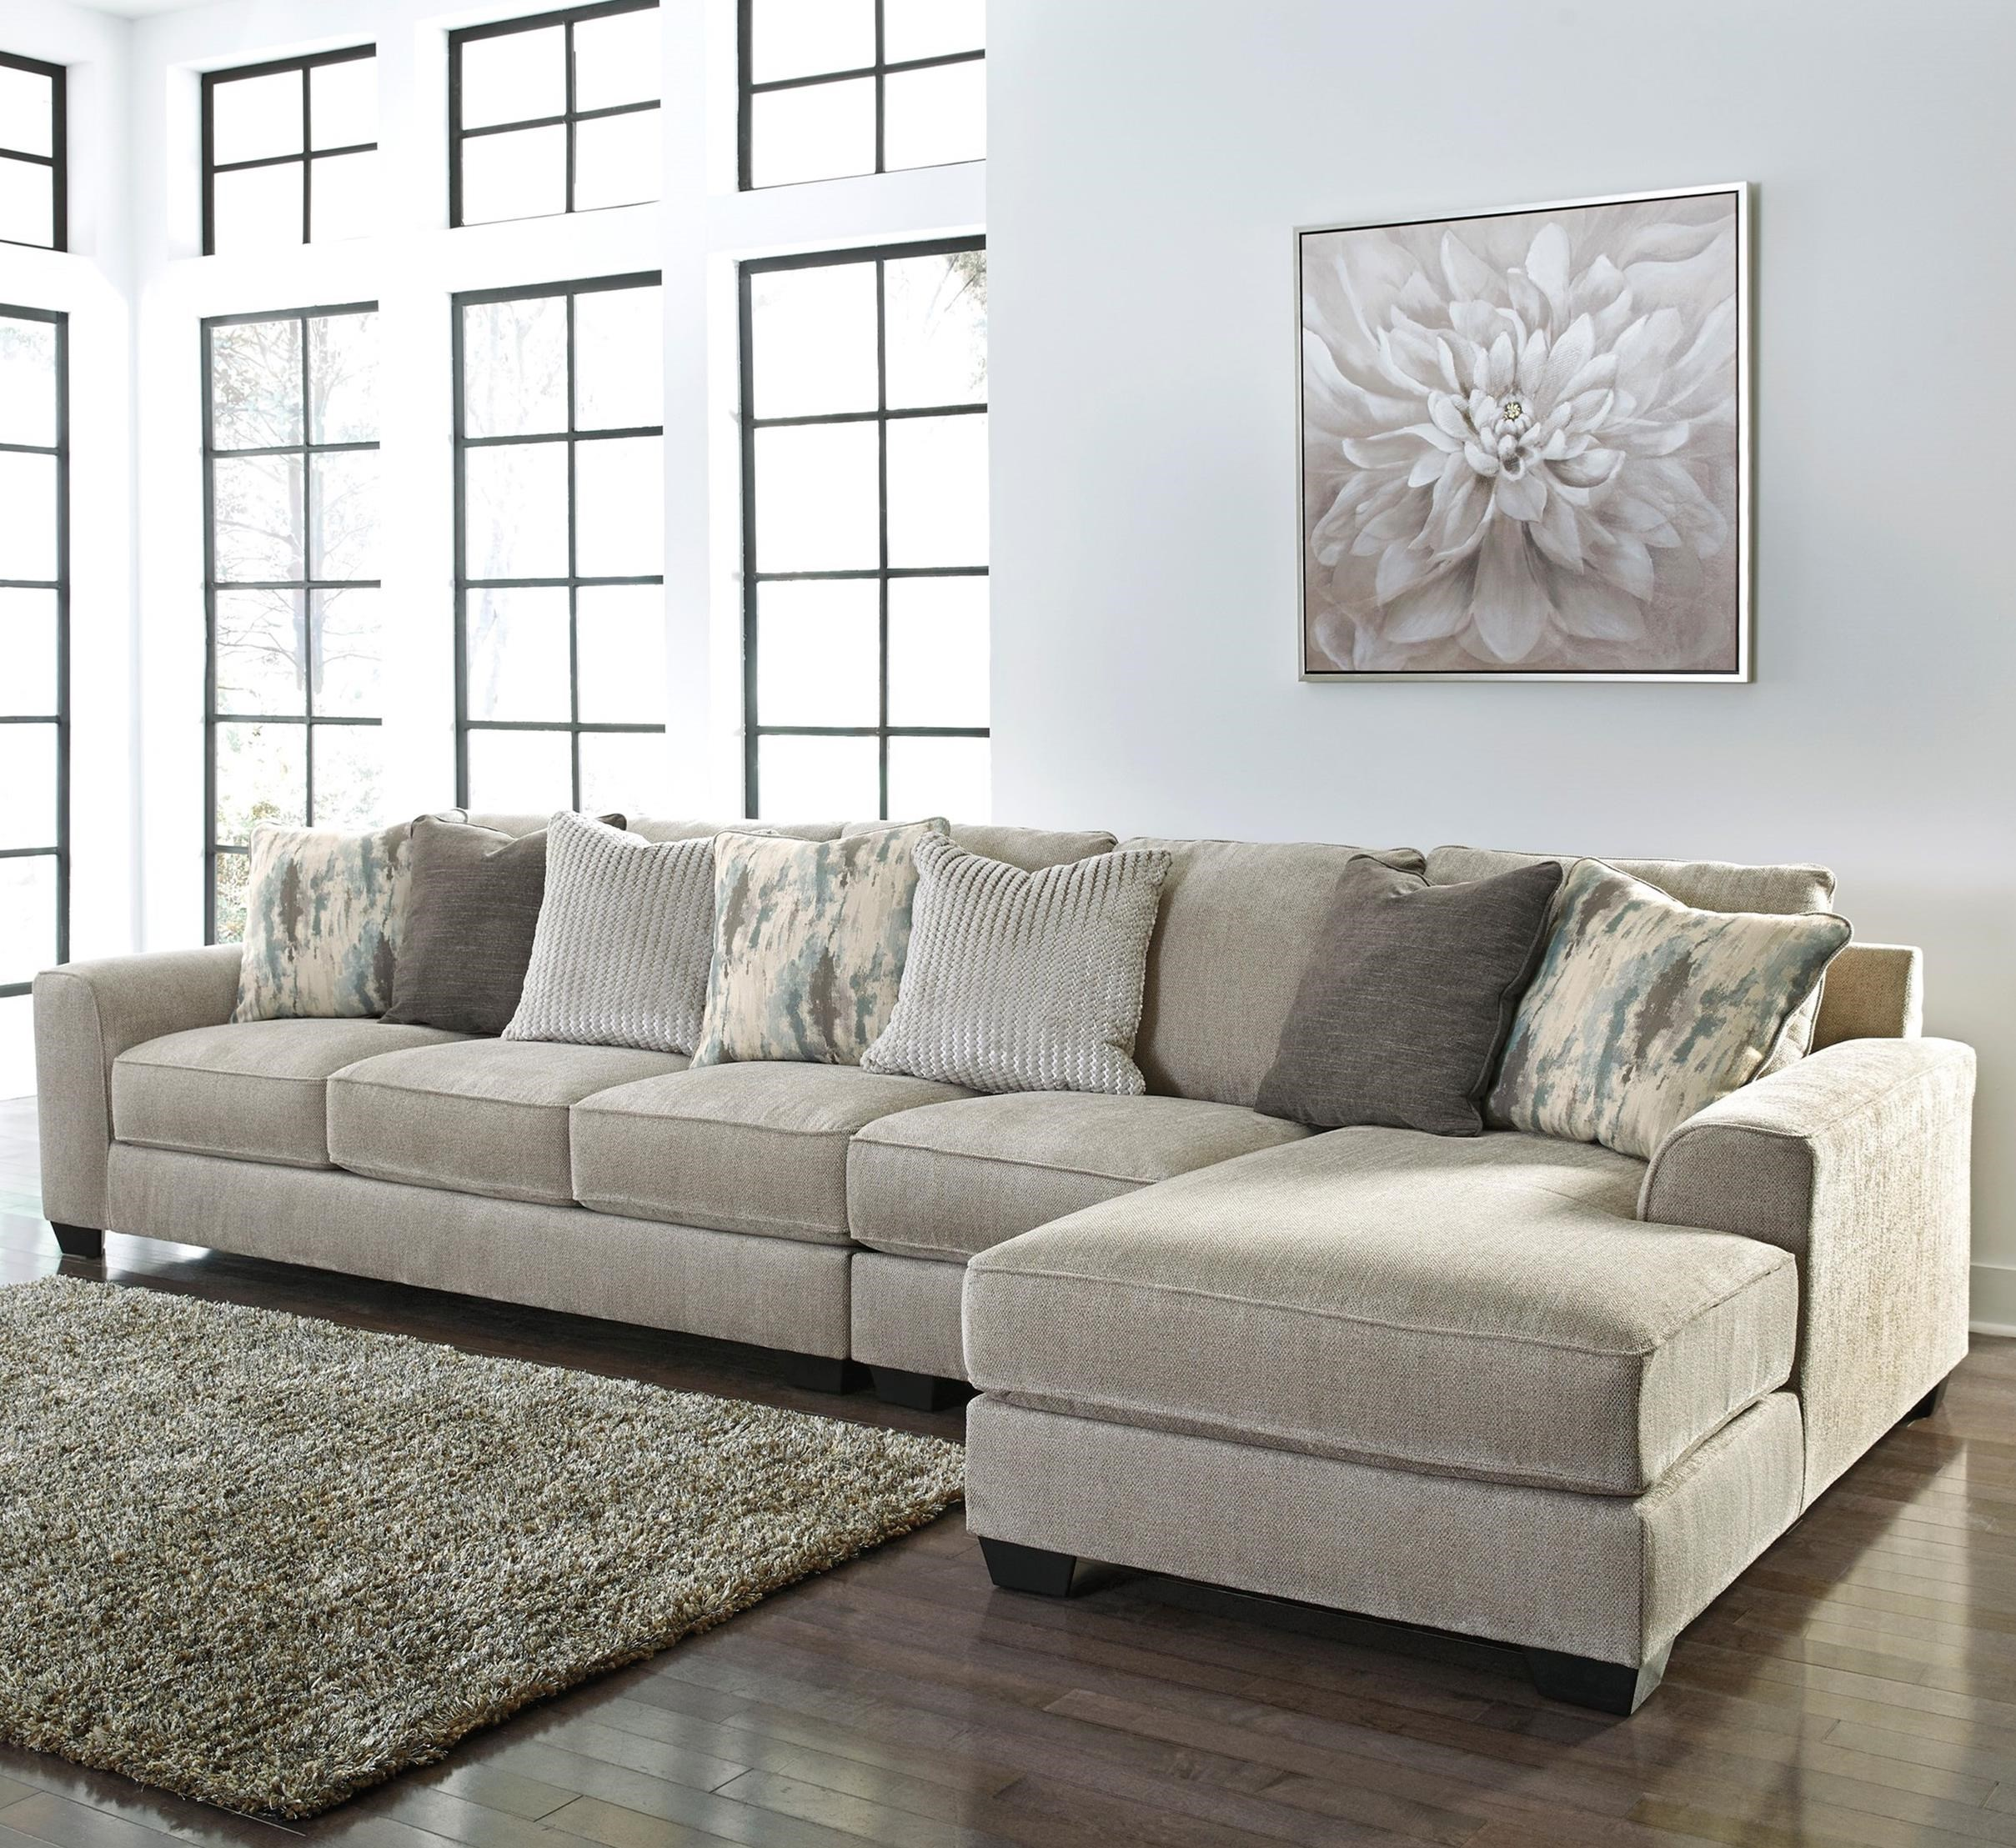 Ardsley 3-Piece Sectional with Right Chaise by Benchcraft at Catalog Outlet